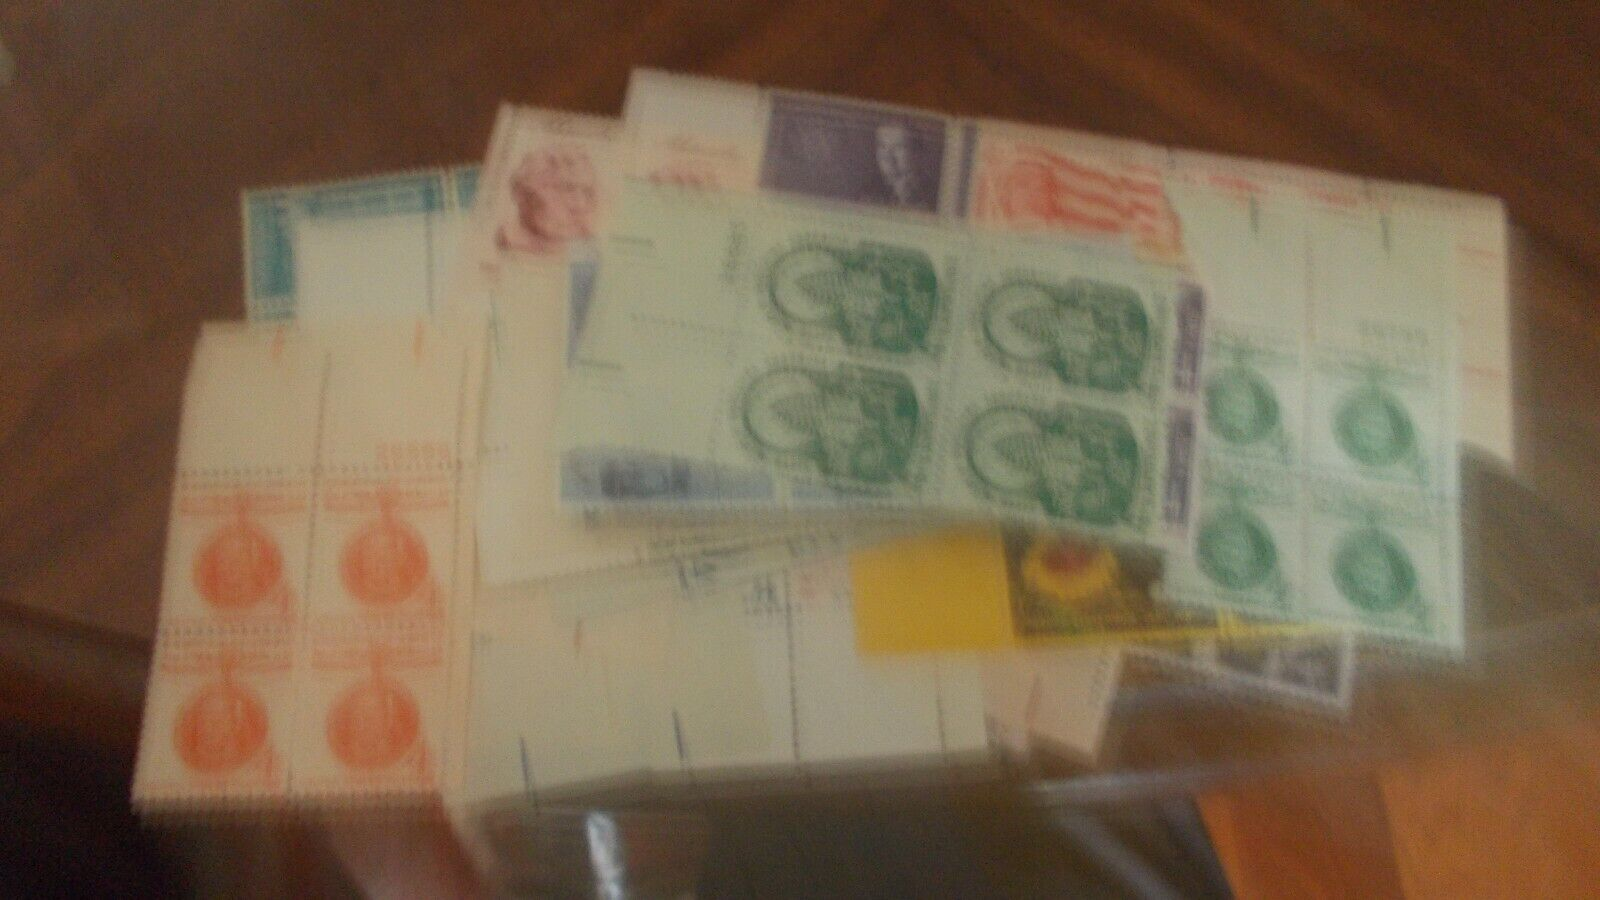 PLATE BLOCKS, U.S. GREAT COLLECTION OF 100 DIFF. MNH .03 TO .15 - $19.99